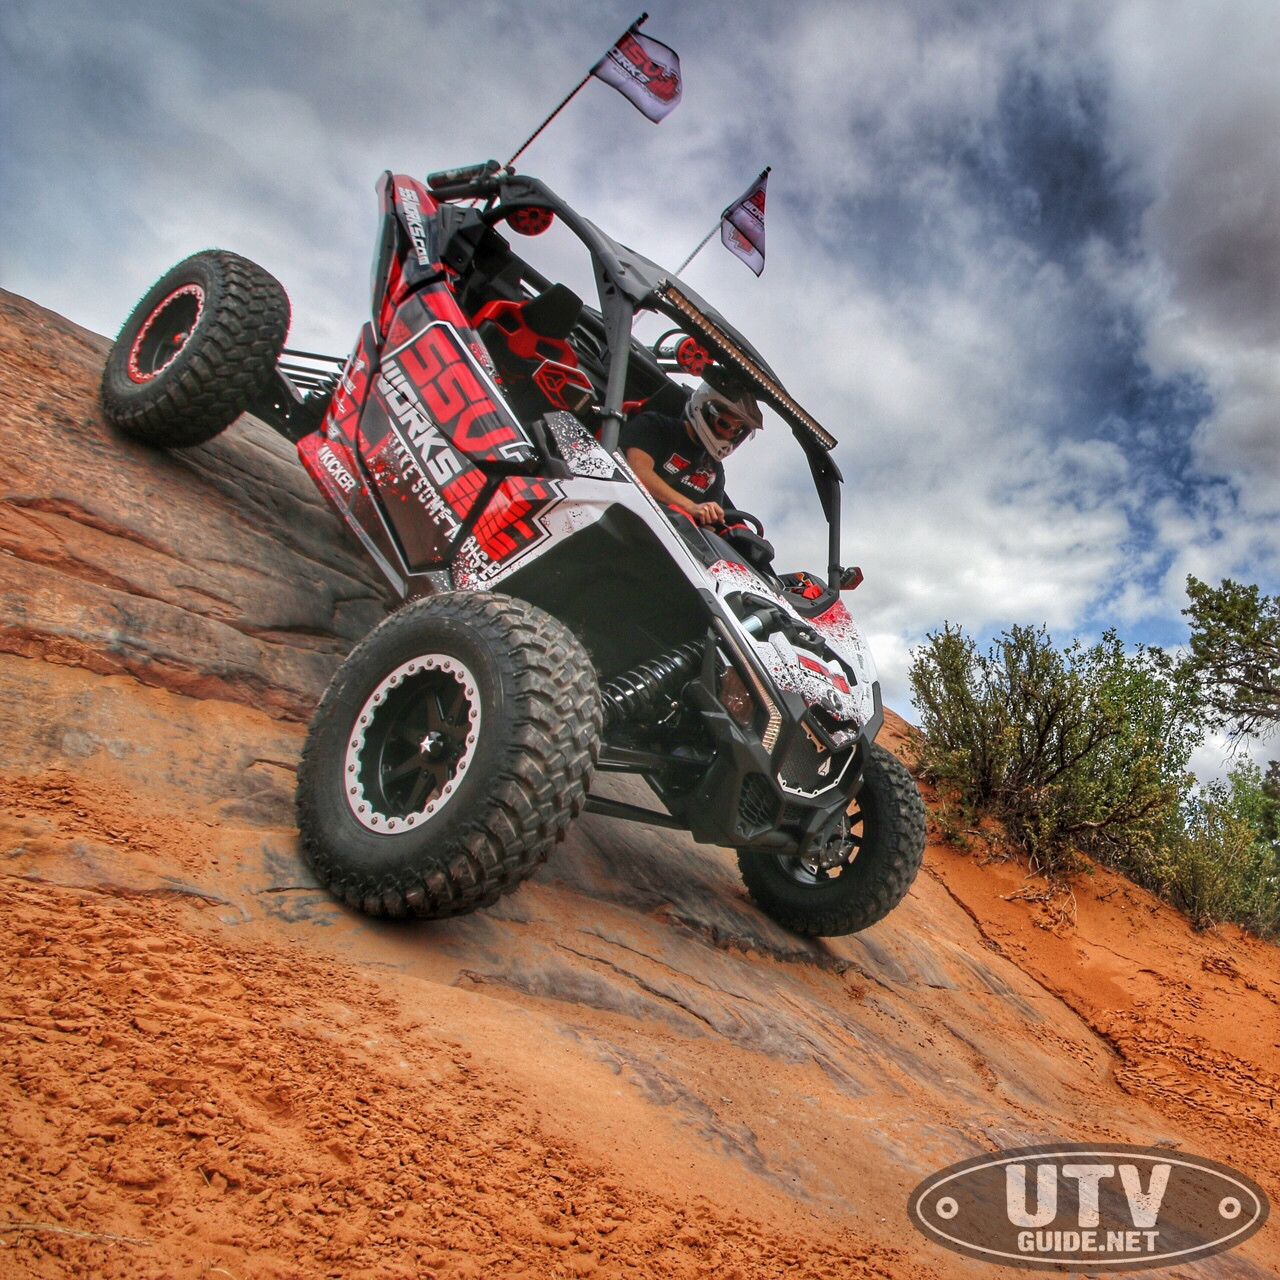 Ssv Works Unveils Maverick X3 Audio Products At Rally On